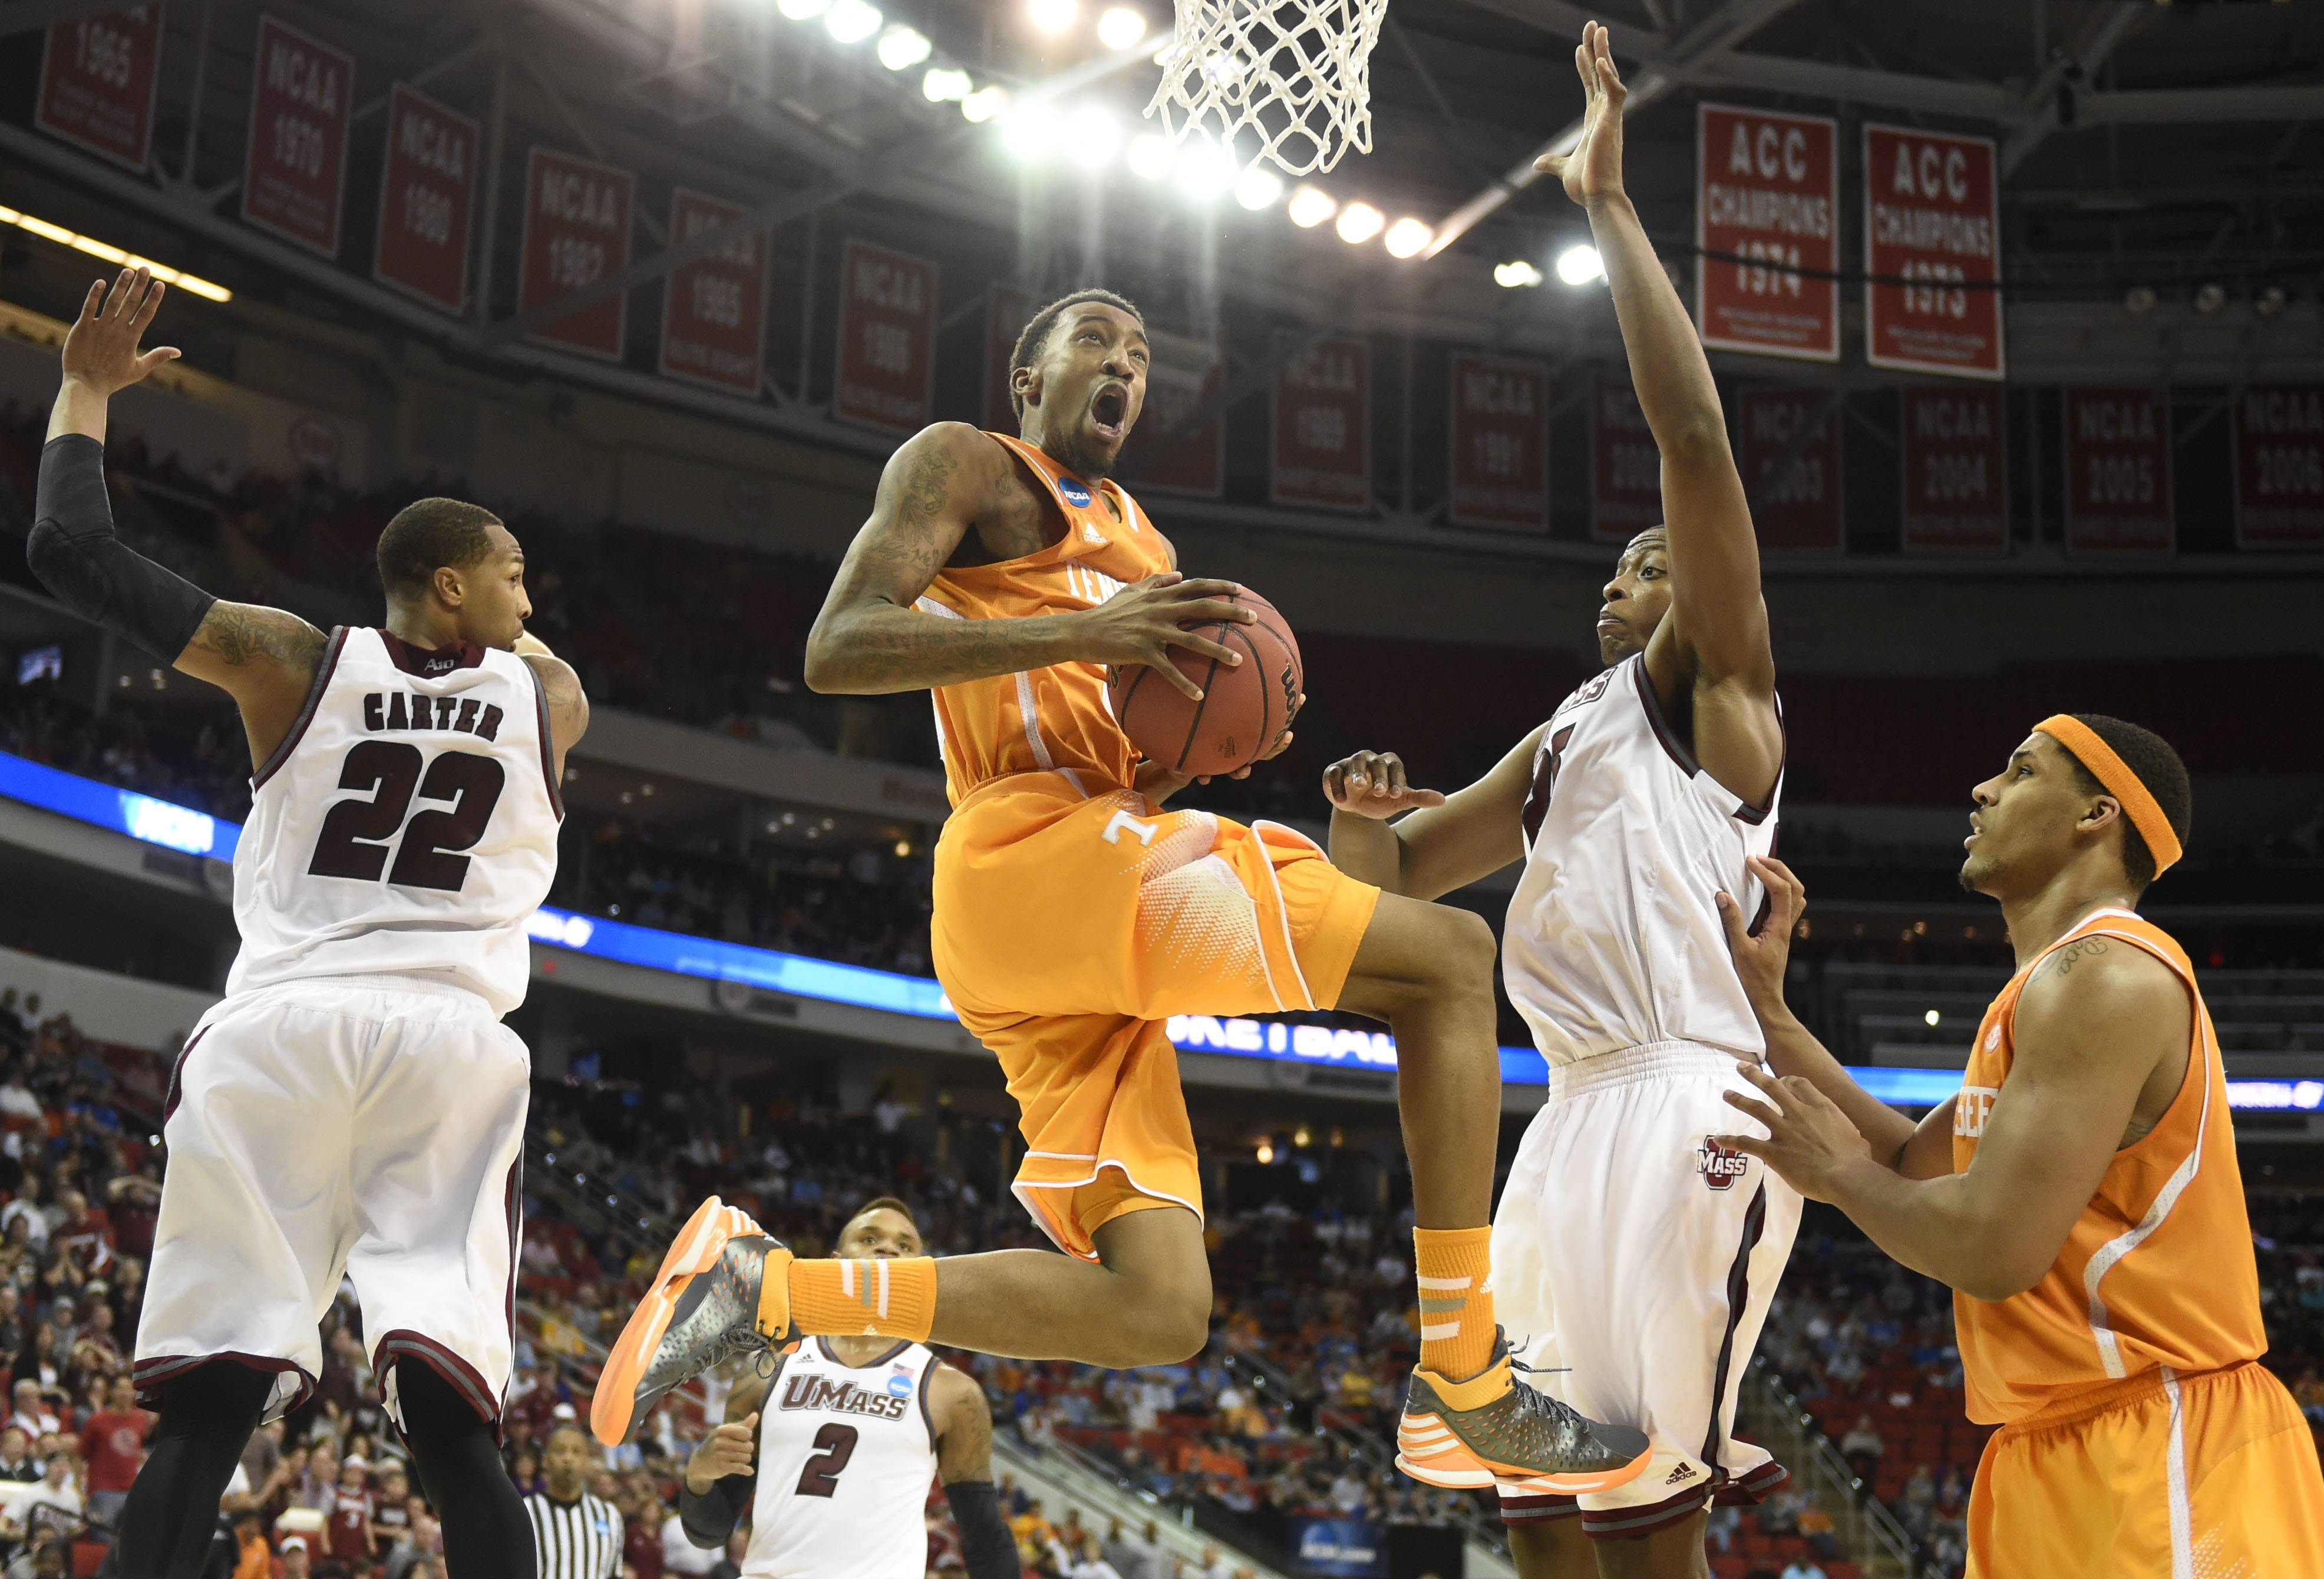 Tennessee smokes UMass 86-67